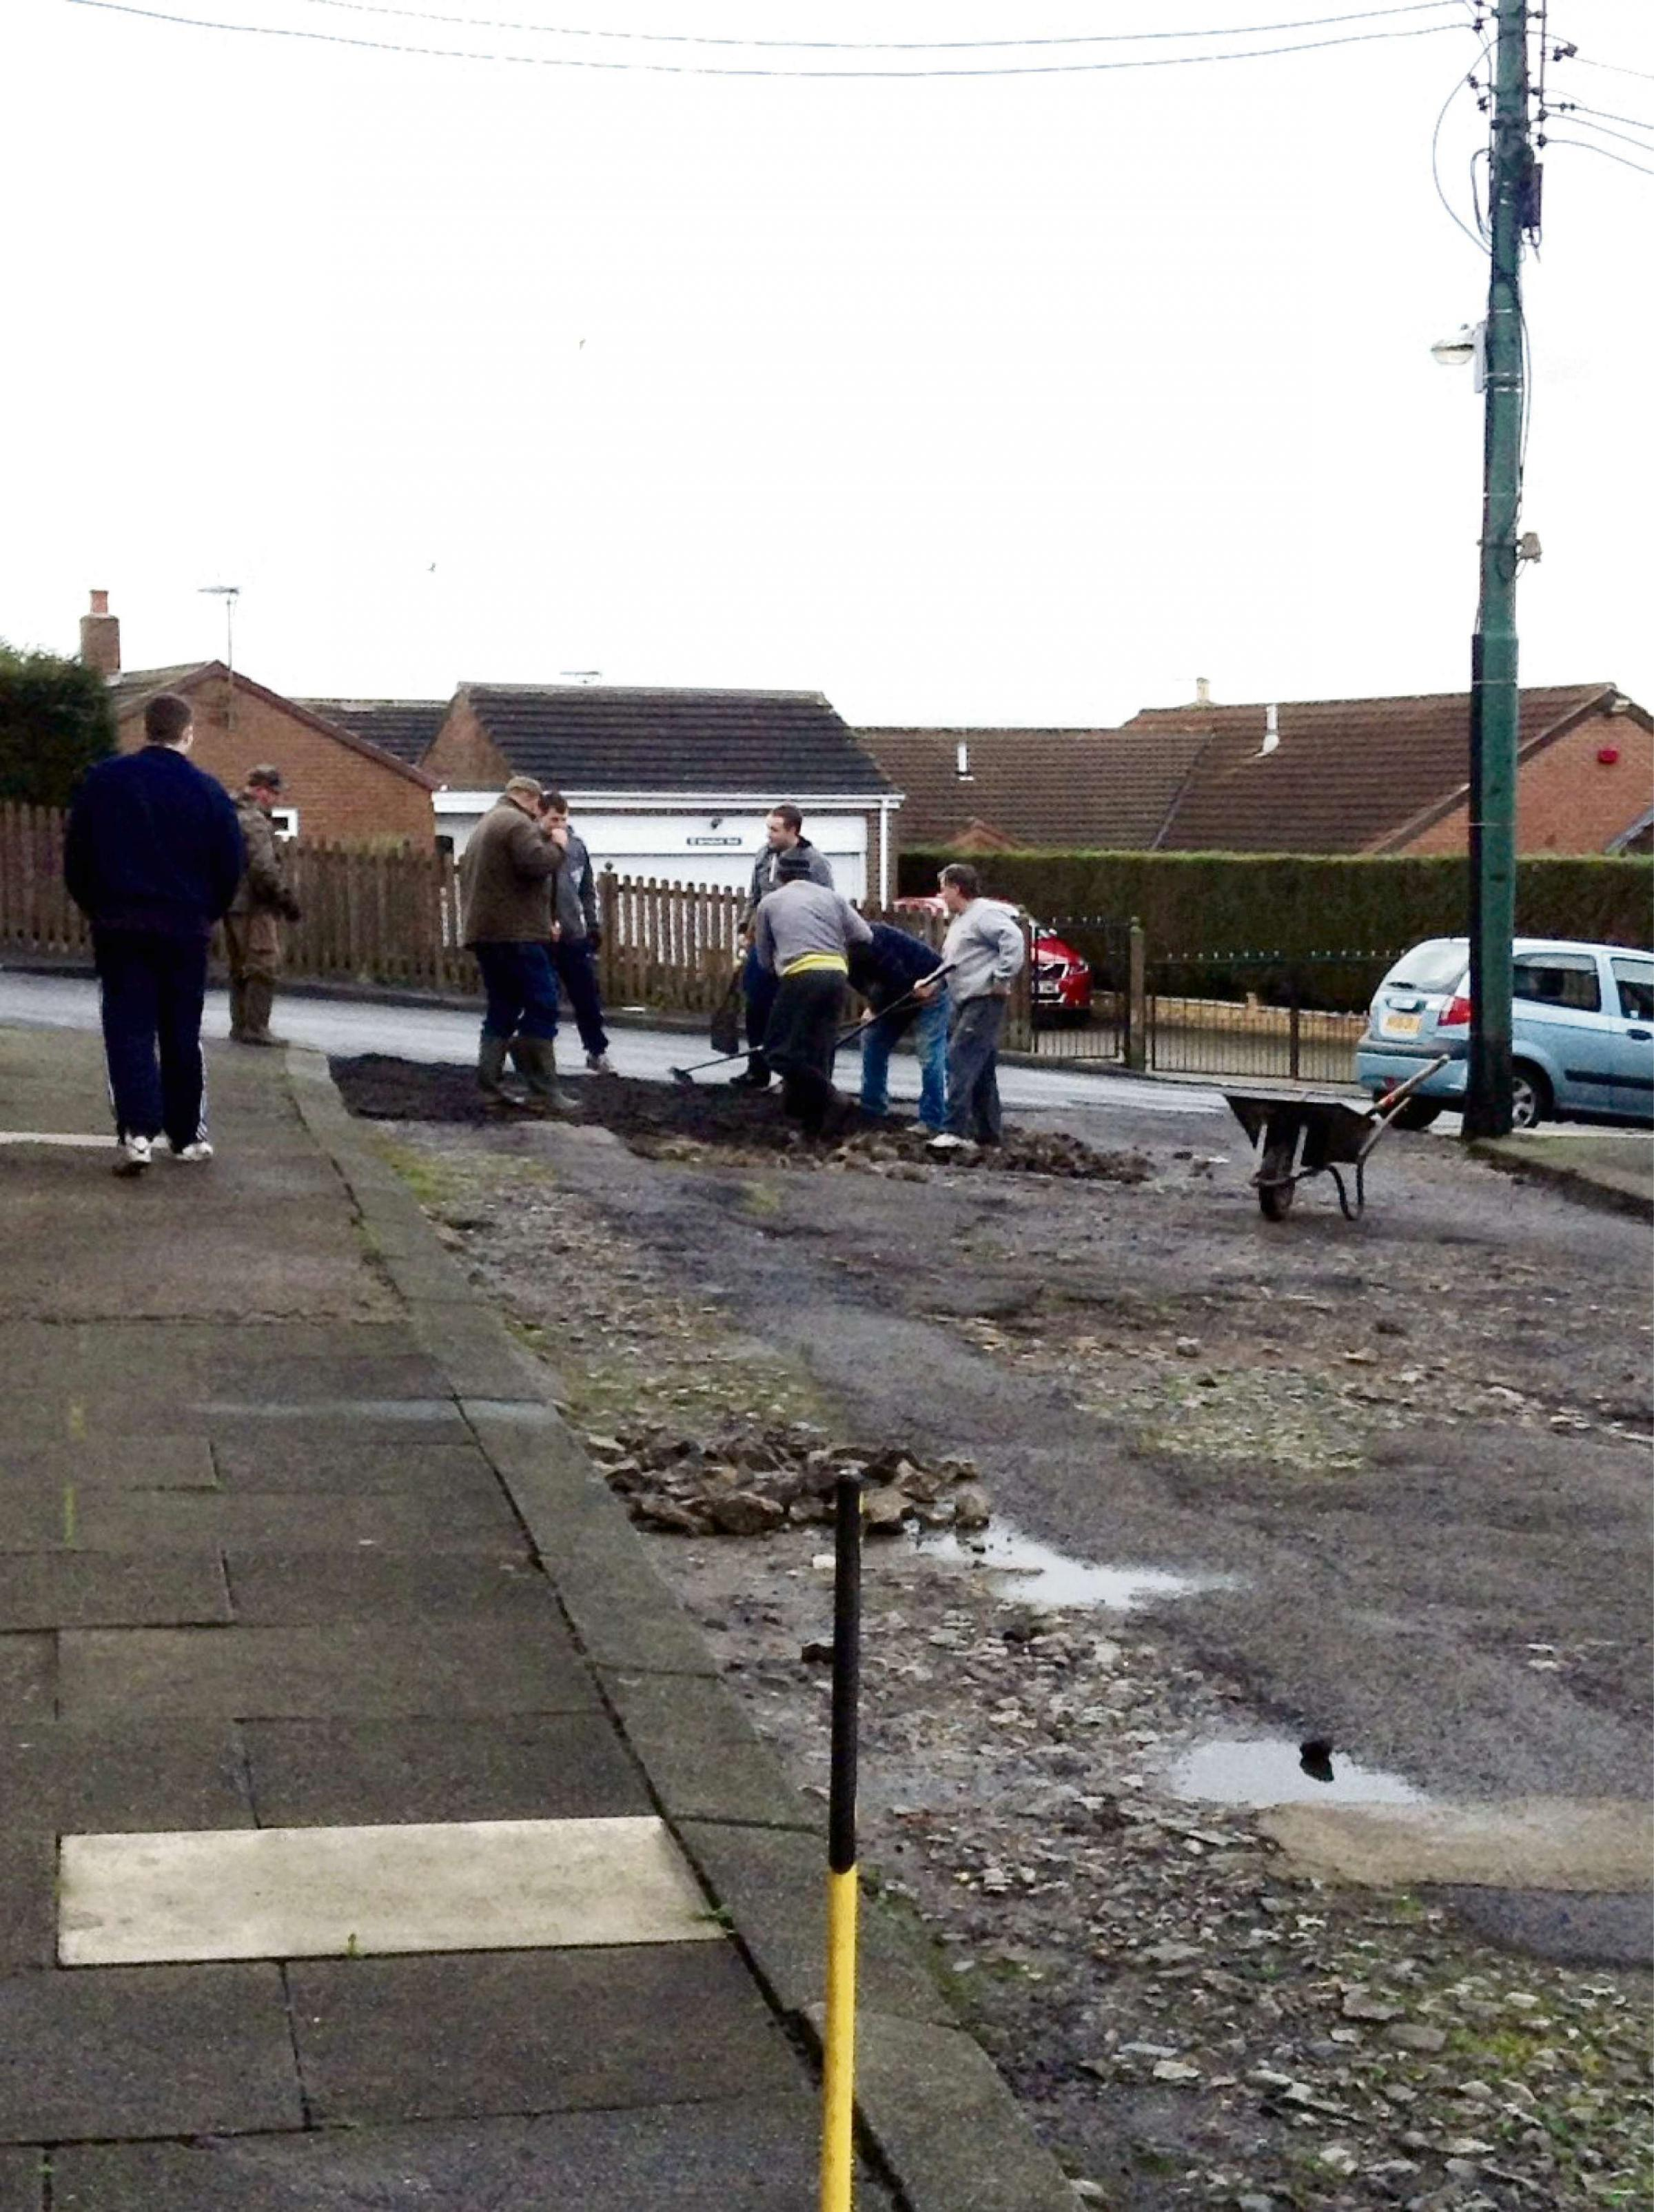 Community near Bishop Auckland thinks on its feet and resurfaces entire road for £45